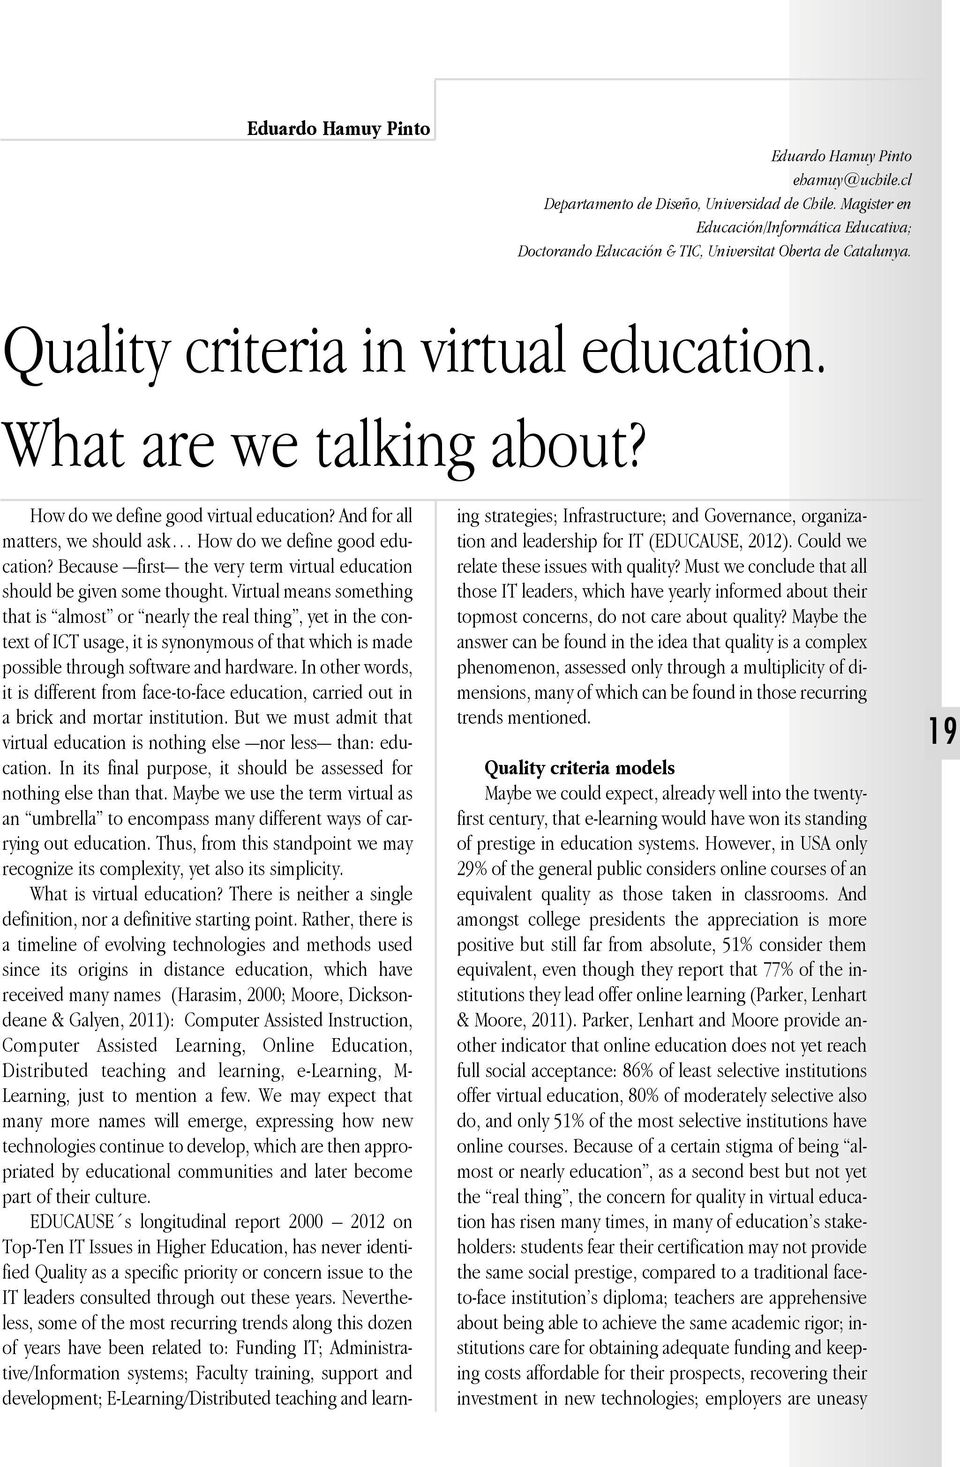 How do we define good virtual education? And for all matters, we should ask How do we define good education? Because first the very term virtual education should be given some thought.